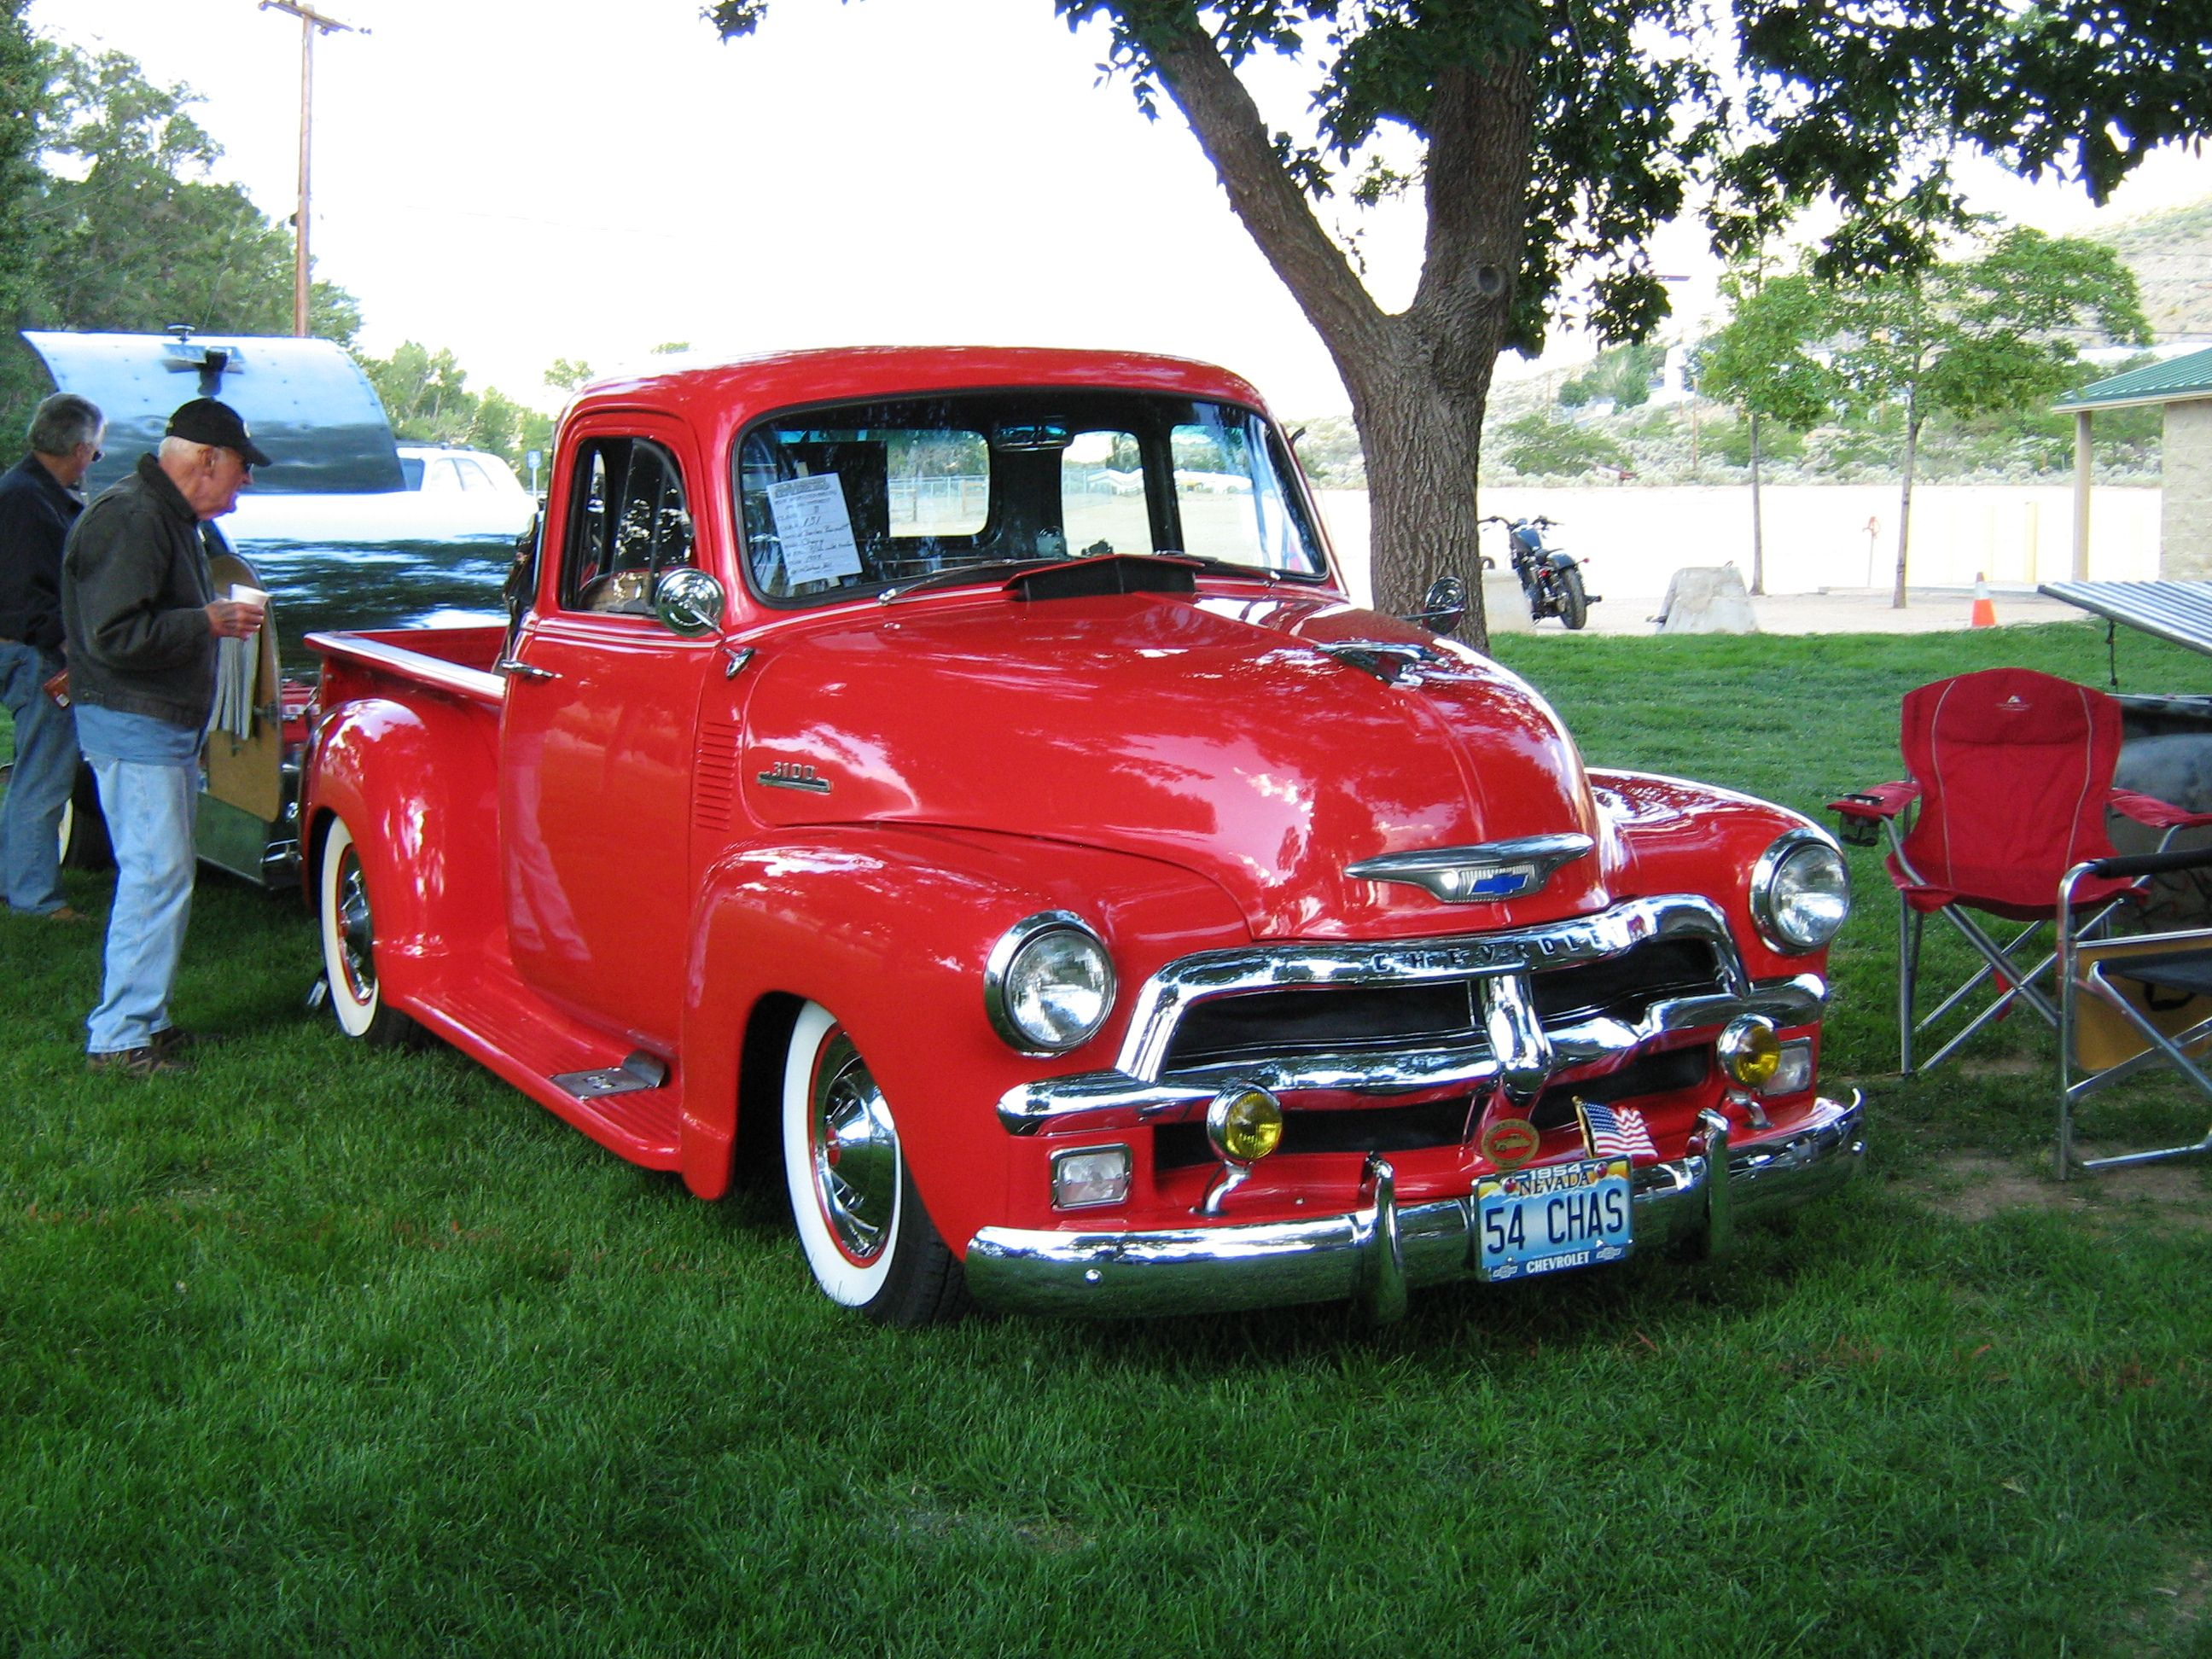 Muscle Trucks Of America Blogs, Custom Trucks, Truck Shows, Classic ...